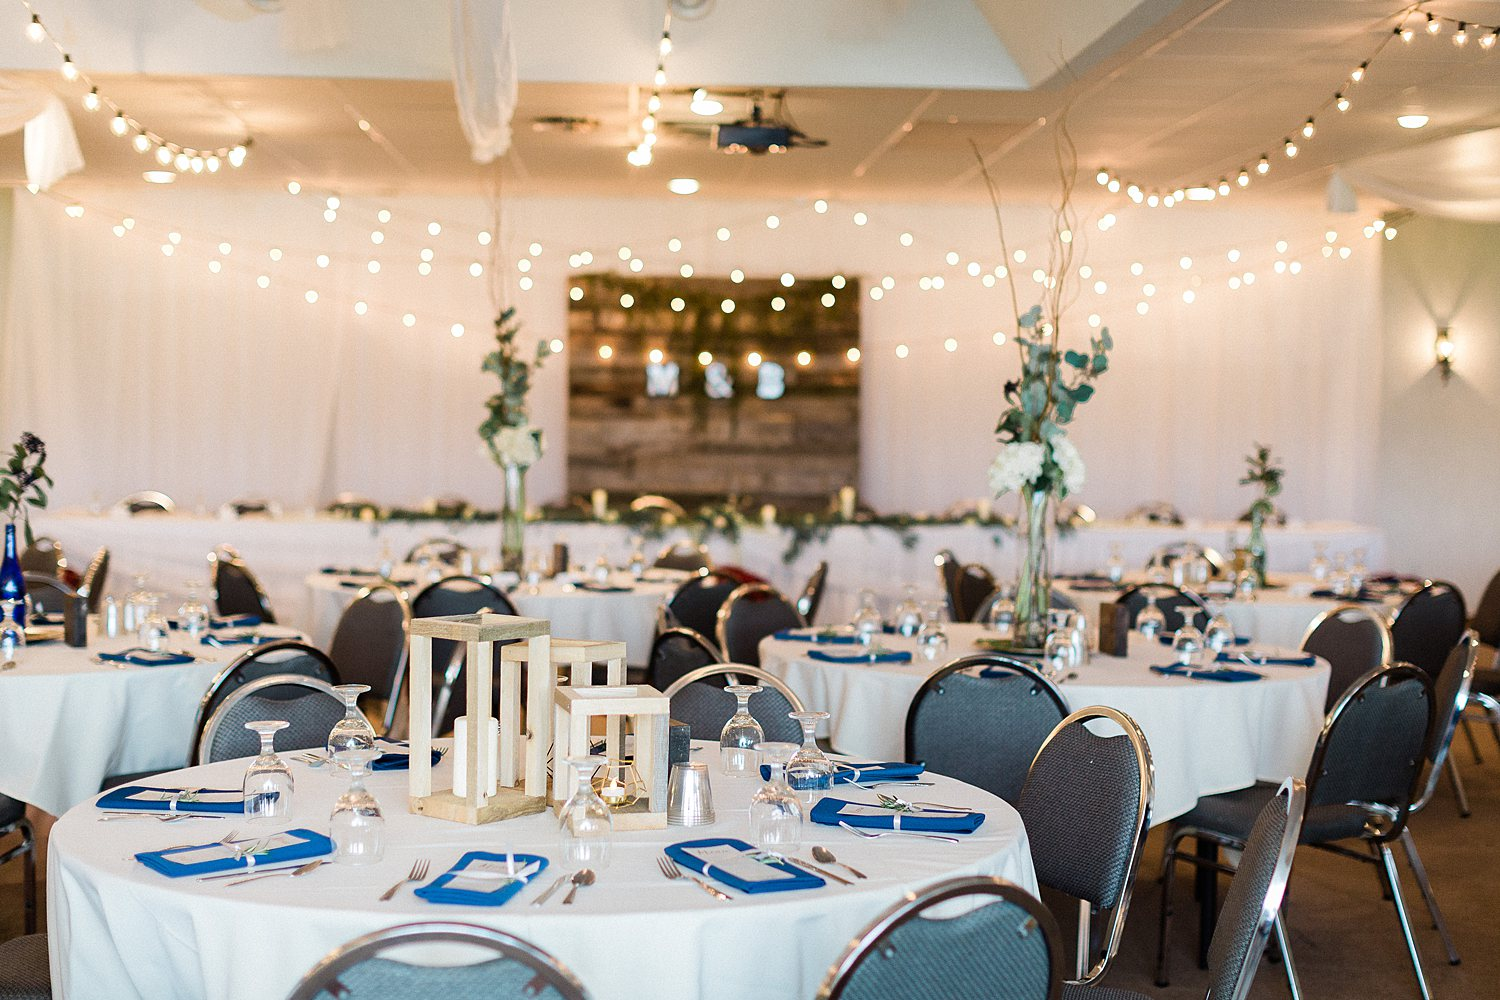 North_Central_Wisconsin_Event_Wedding_Venues_Fall_Weddings_The_Bailiwick_Venue_James-Stokes-Photography053.jpg